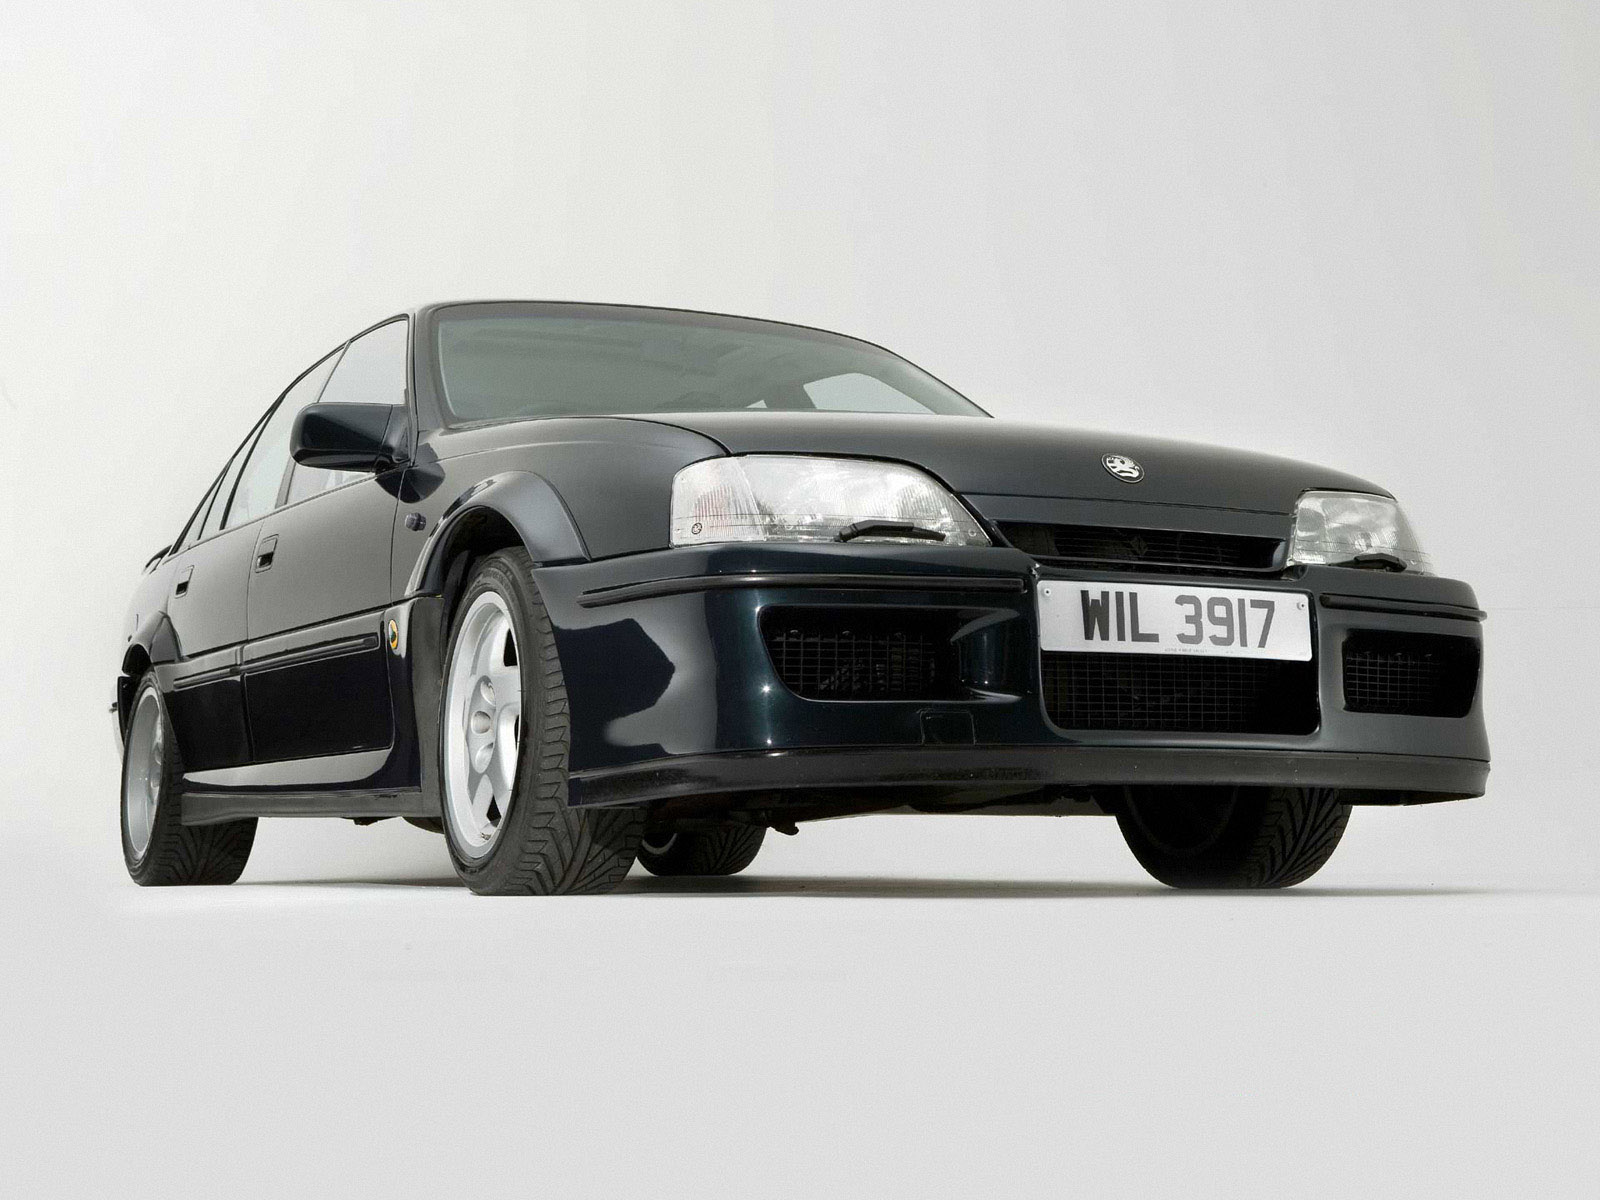 vauxhall lotus carlton 1990 1992 vauxhall lotus carlton. Black Bedroom Furniture Sets. Home Design Ideas